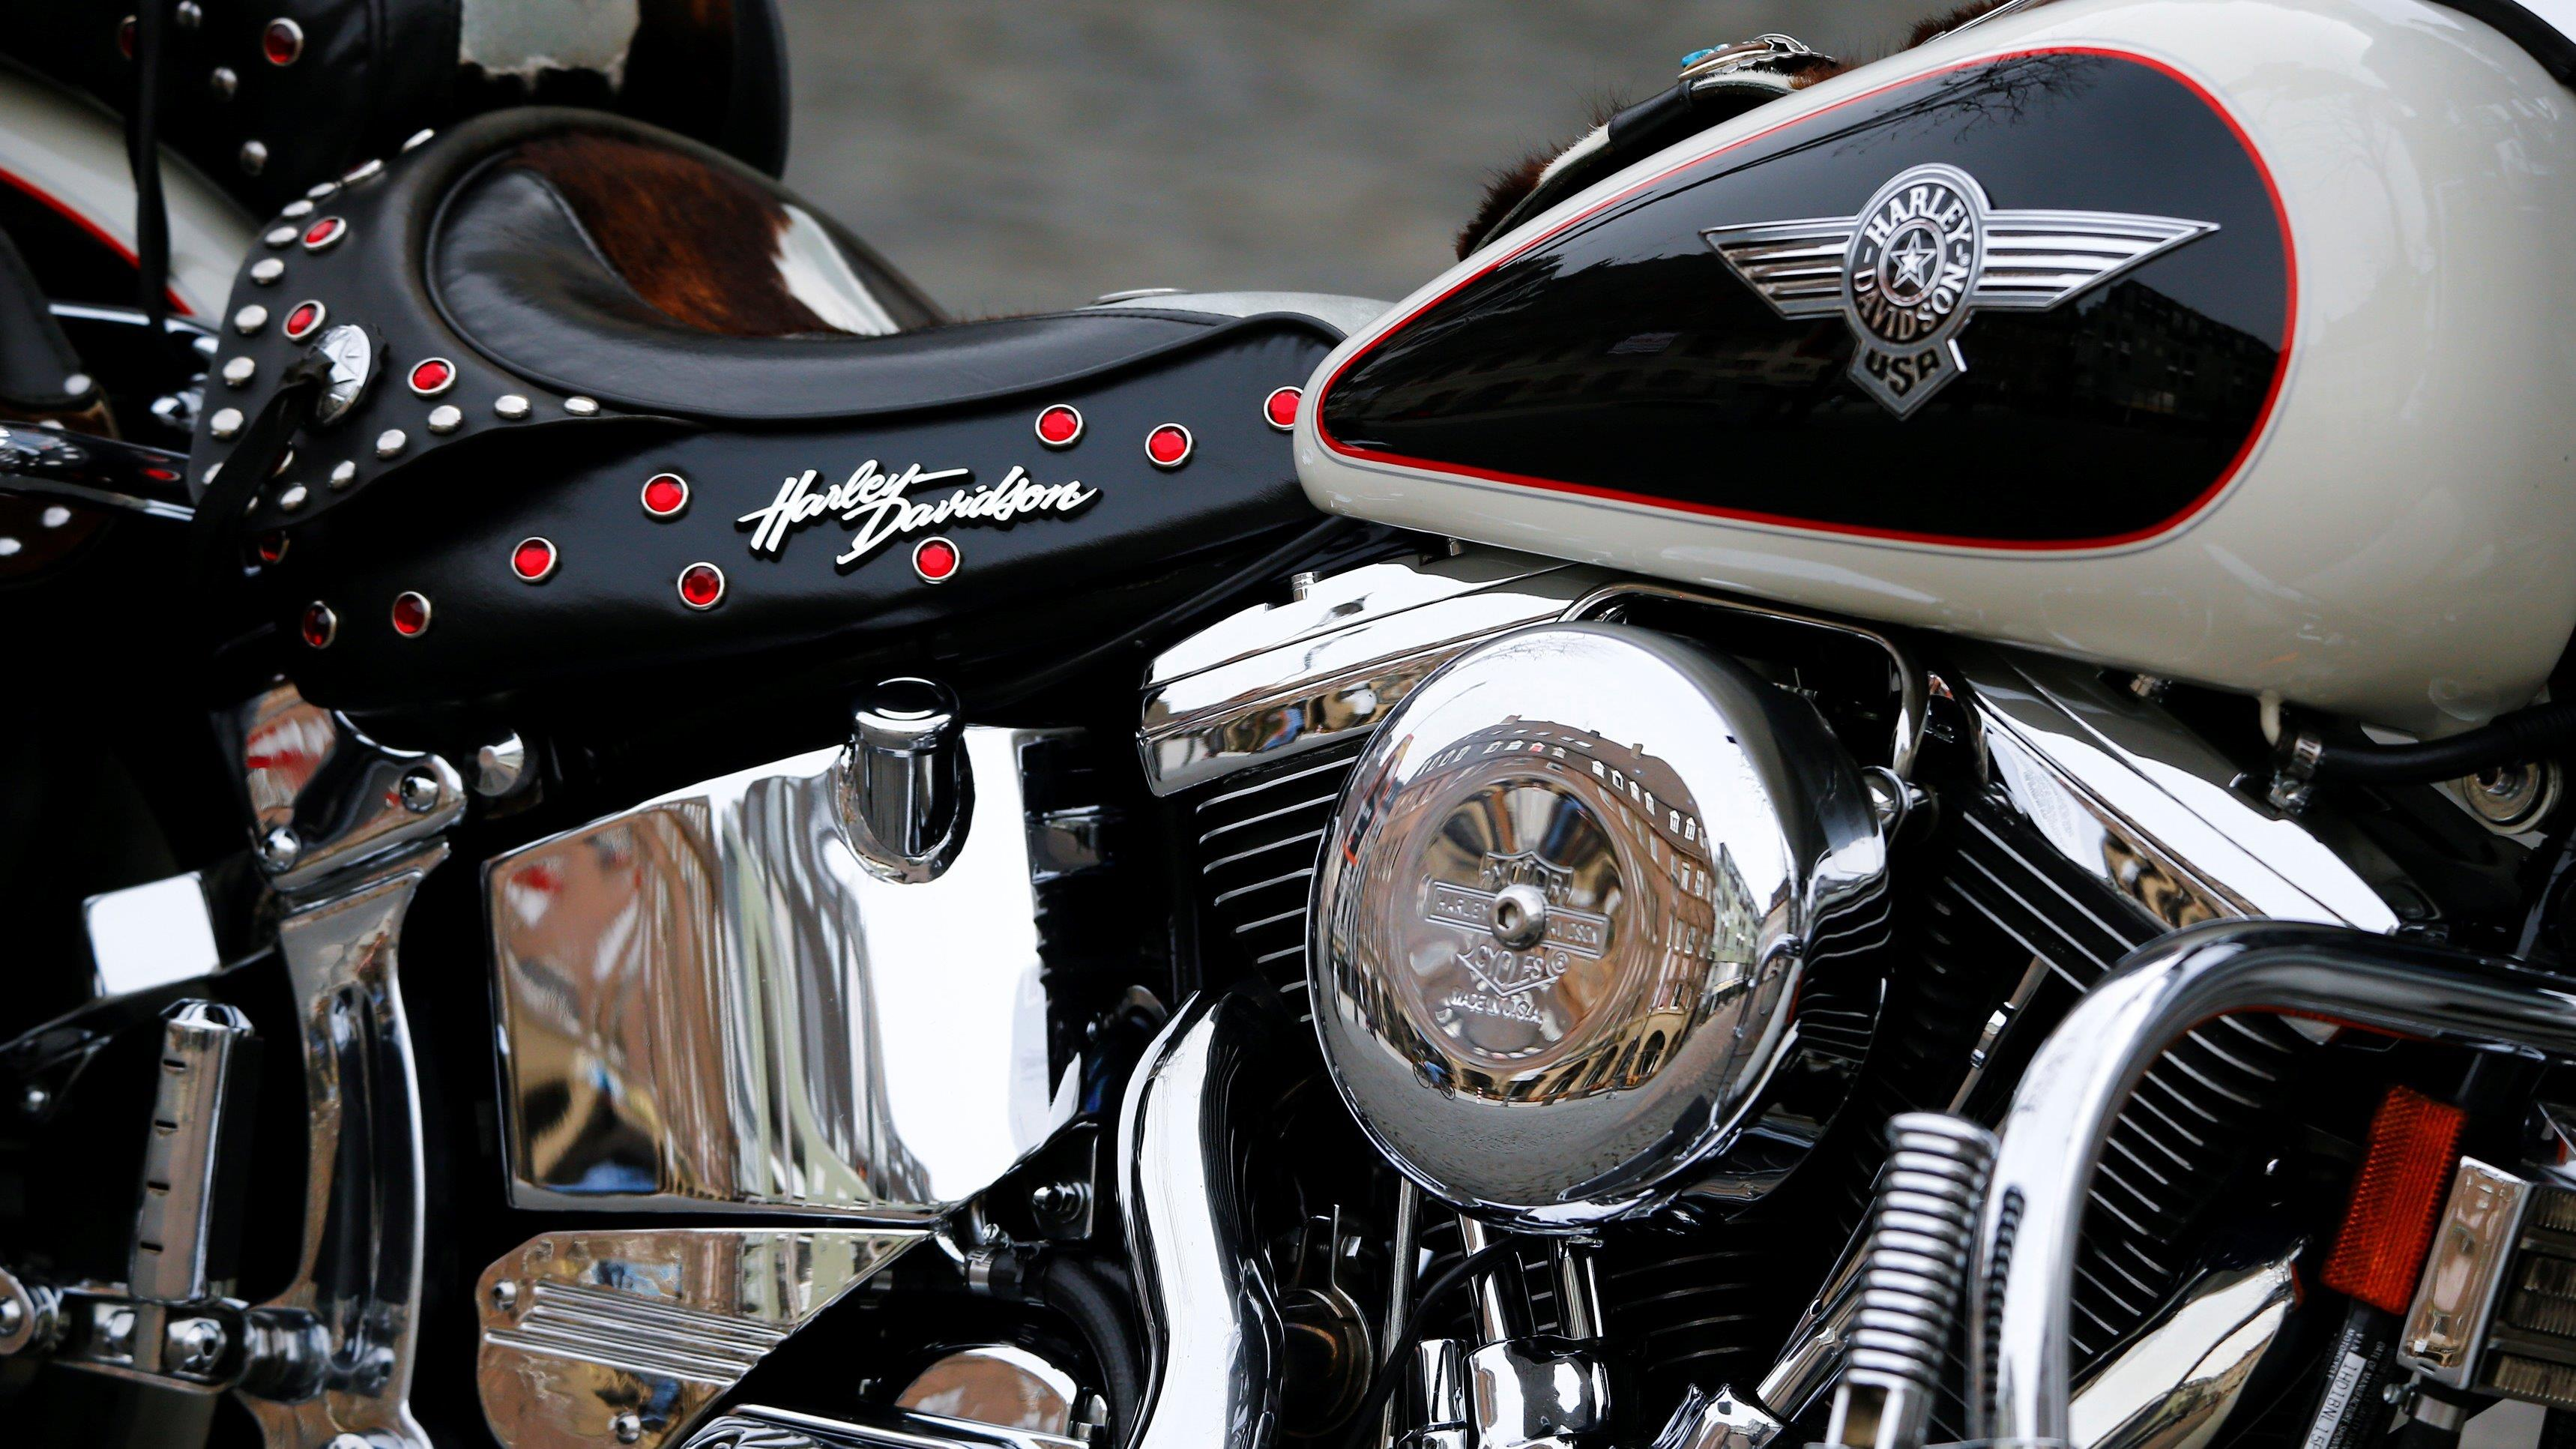 Harley-Davidson CEO Matt Levatich discusses sales, free-trade and his outlook for growth.